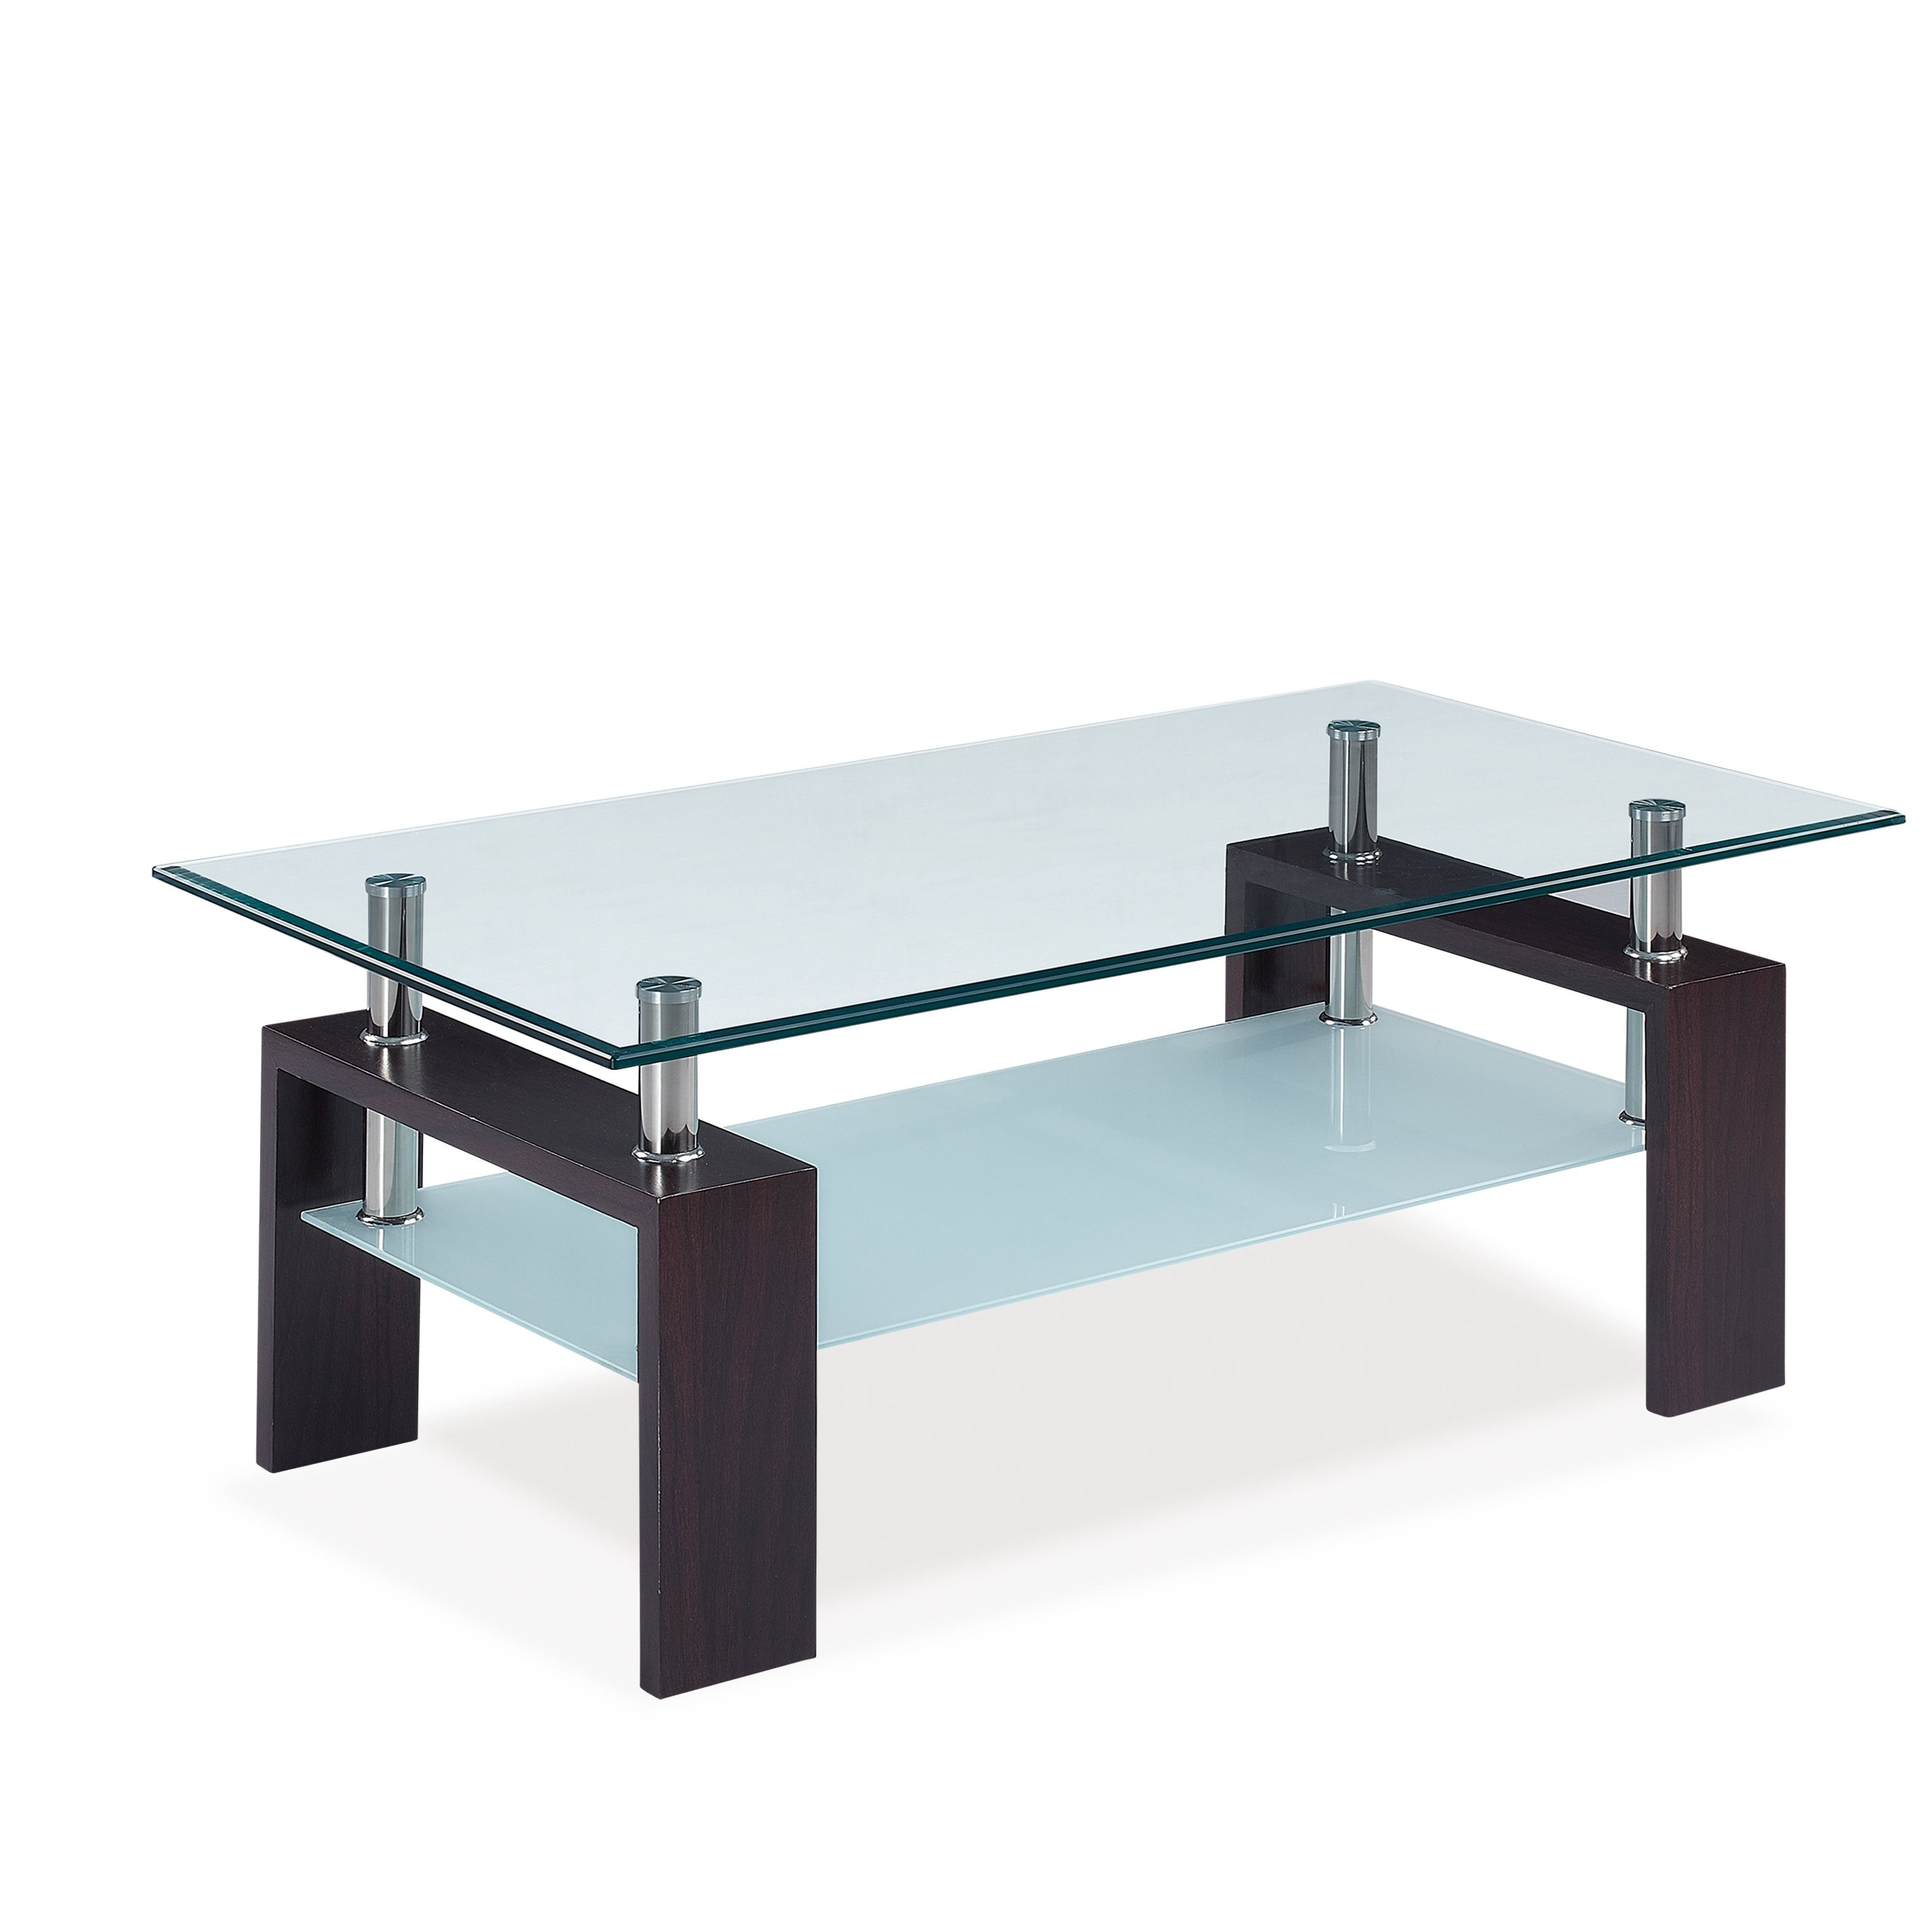 Shop global furniture brown wood veneer glass coffee table free shipping today overstock com 13121918